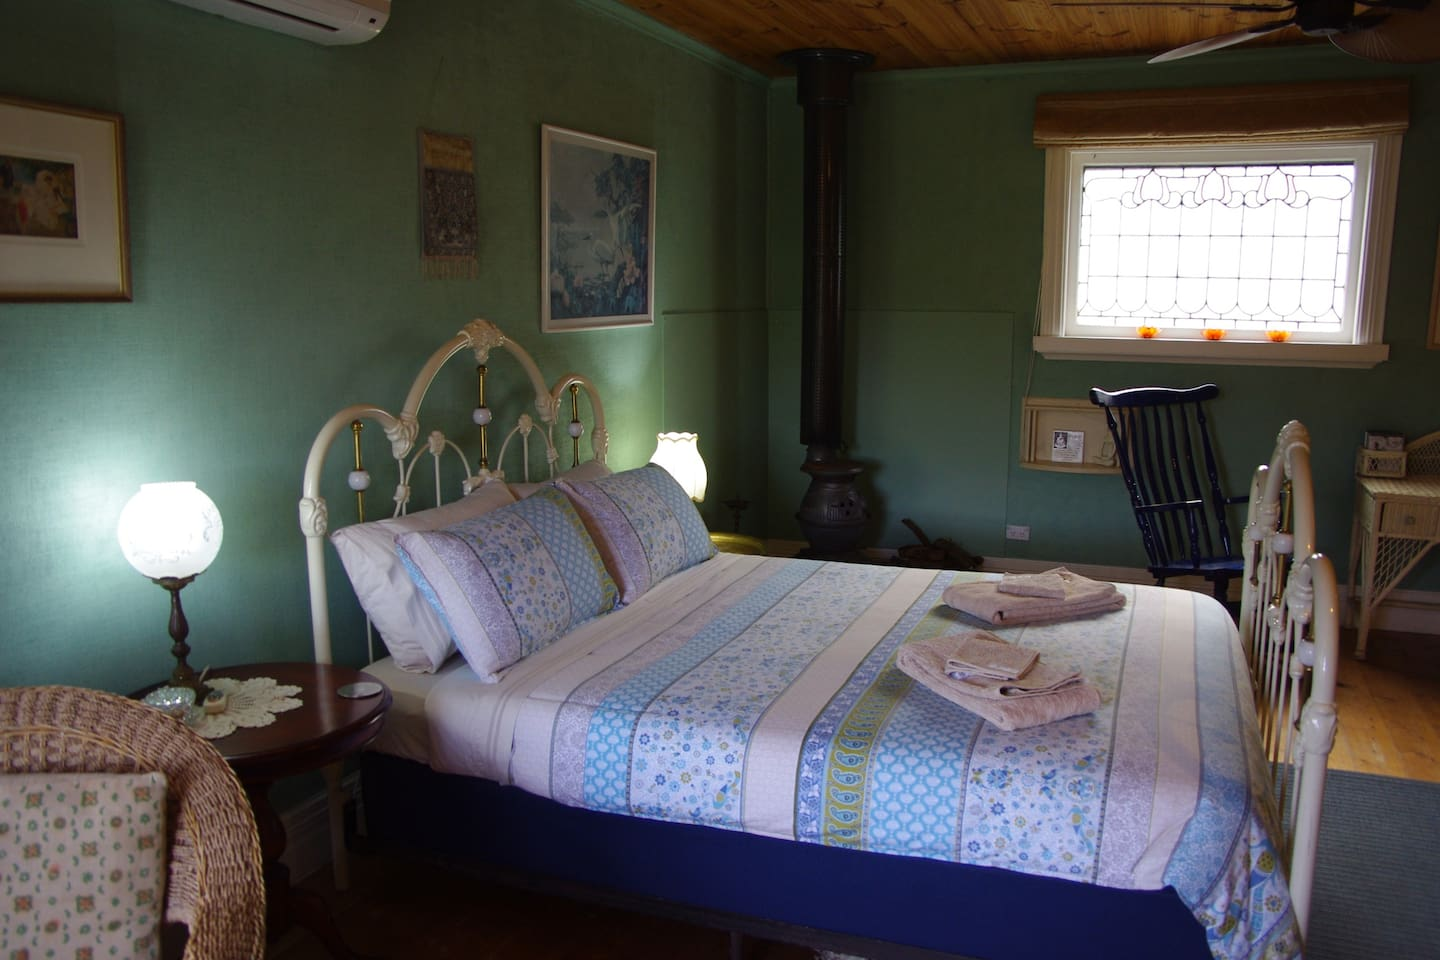 A spacious room that is cosy and comfortable. Top quality mattress and bedding makes for a restful sleep